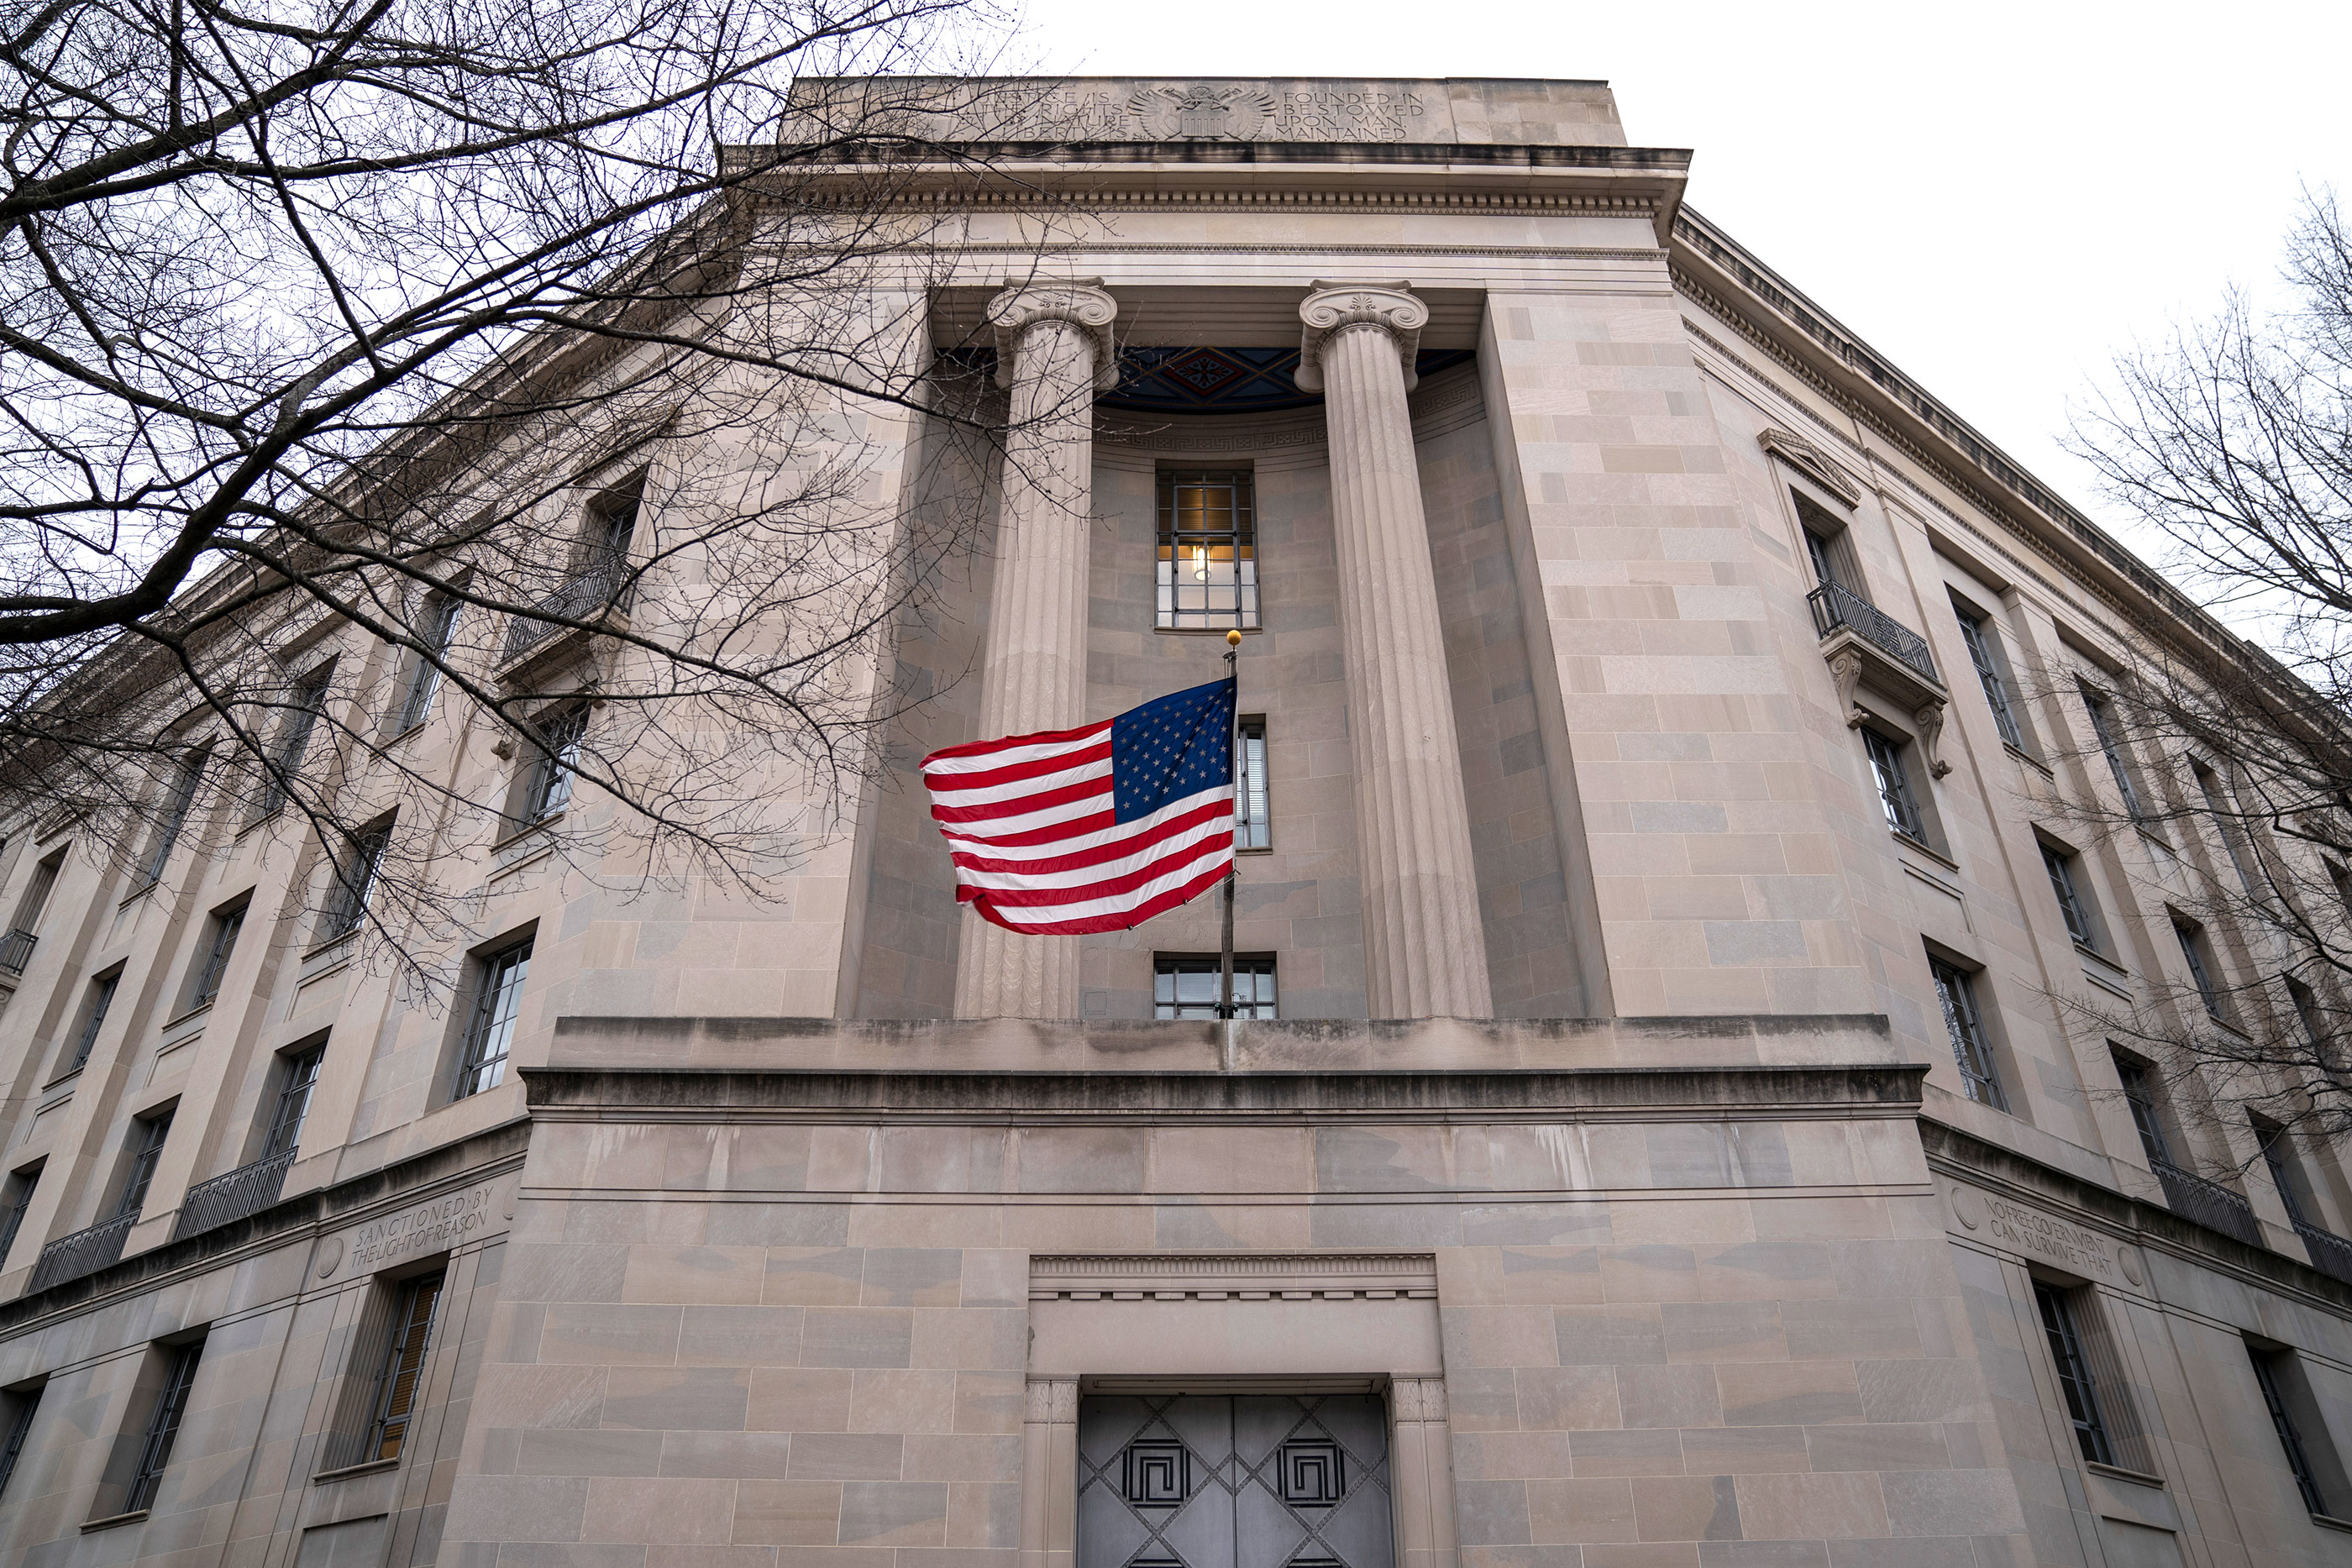 The Department of Justice headquarters in Washington, D.C.